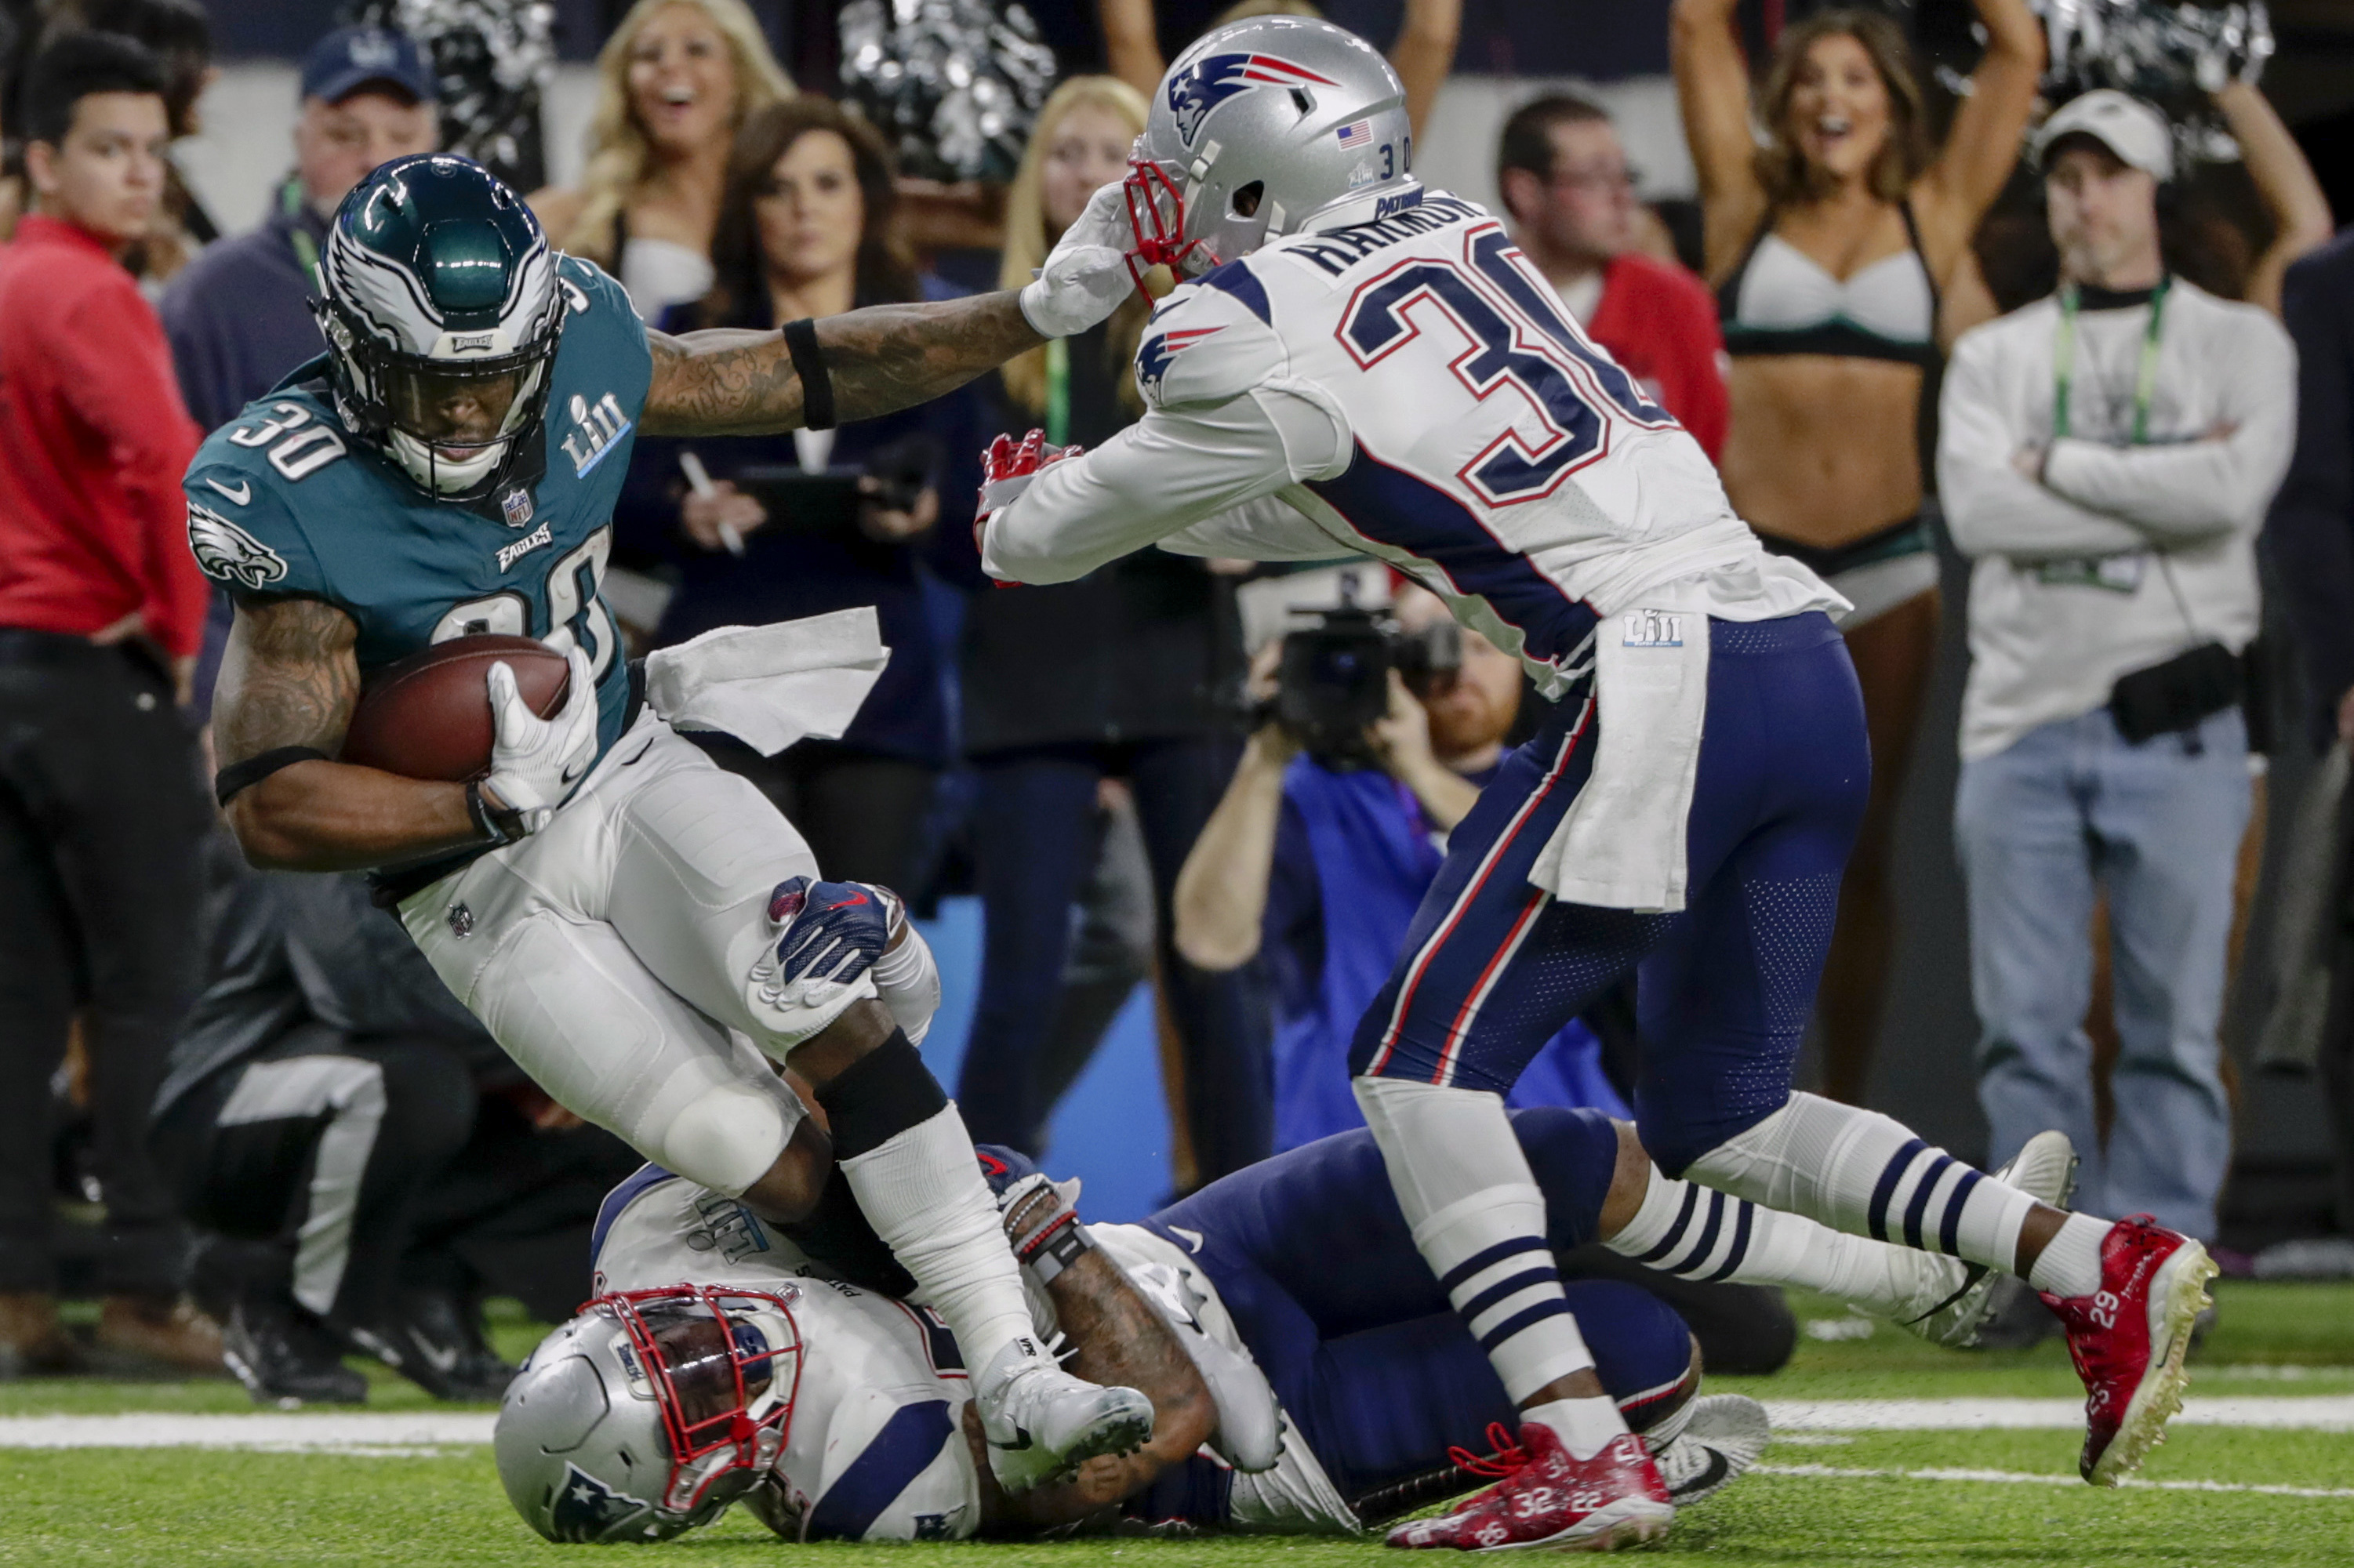 <div class='meta'><div class='origin-logo' data-origin='AP'></div><span class='caption-text' data-credit='AP Photo/Chris O'Meara'>Philadelphia Eagles running back Corey Clement (30), is tackled by New England Patriots outside linebacker Elandon Roberts (52), bottom, and strong safety Duron Harmon (30).</span></div>